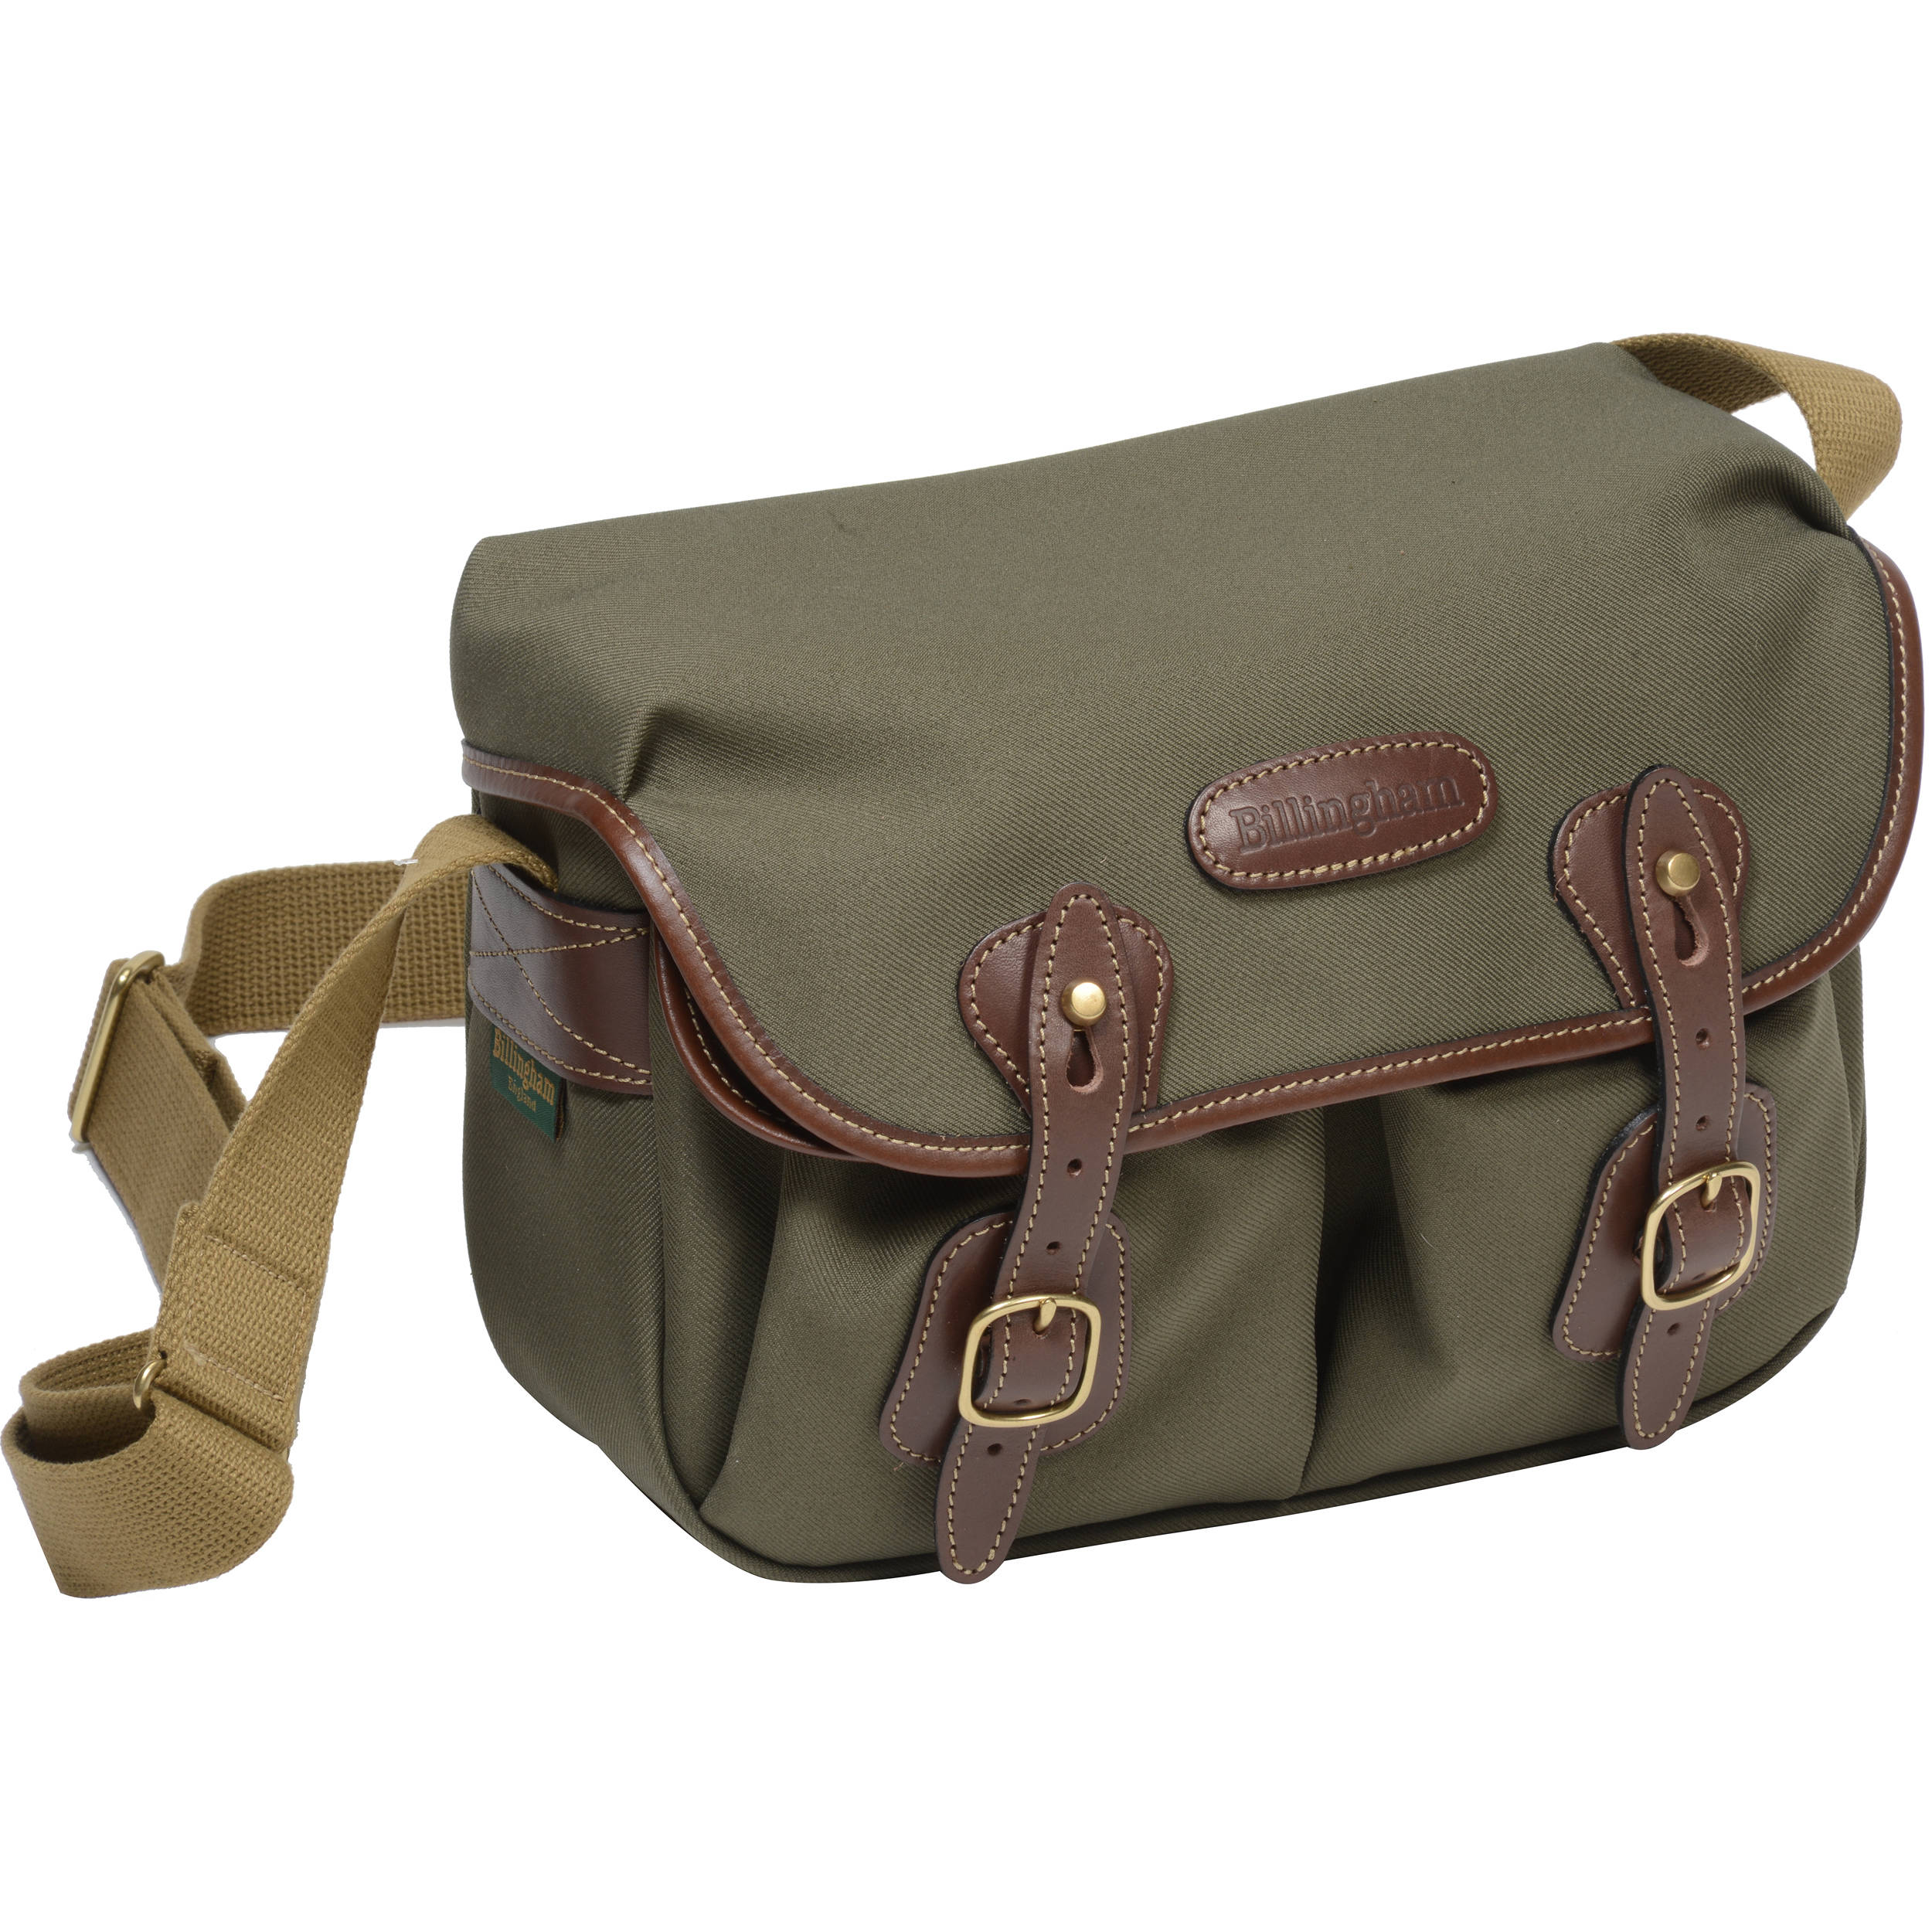 Billingham Hadley Shoulder Bag Small Sage With Chocolate Leather Trim